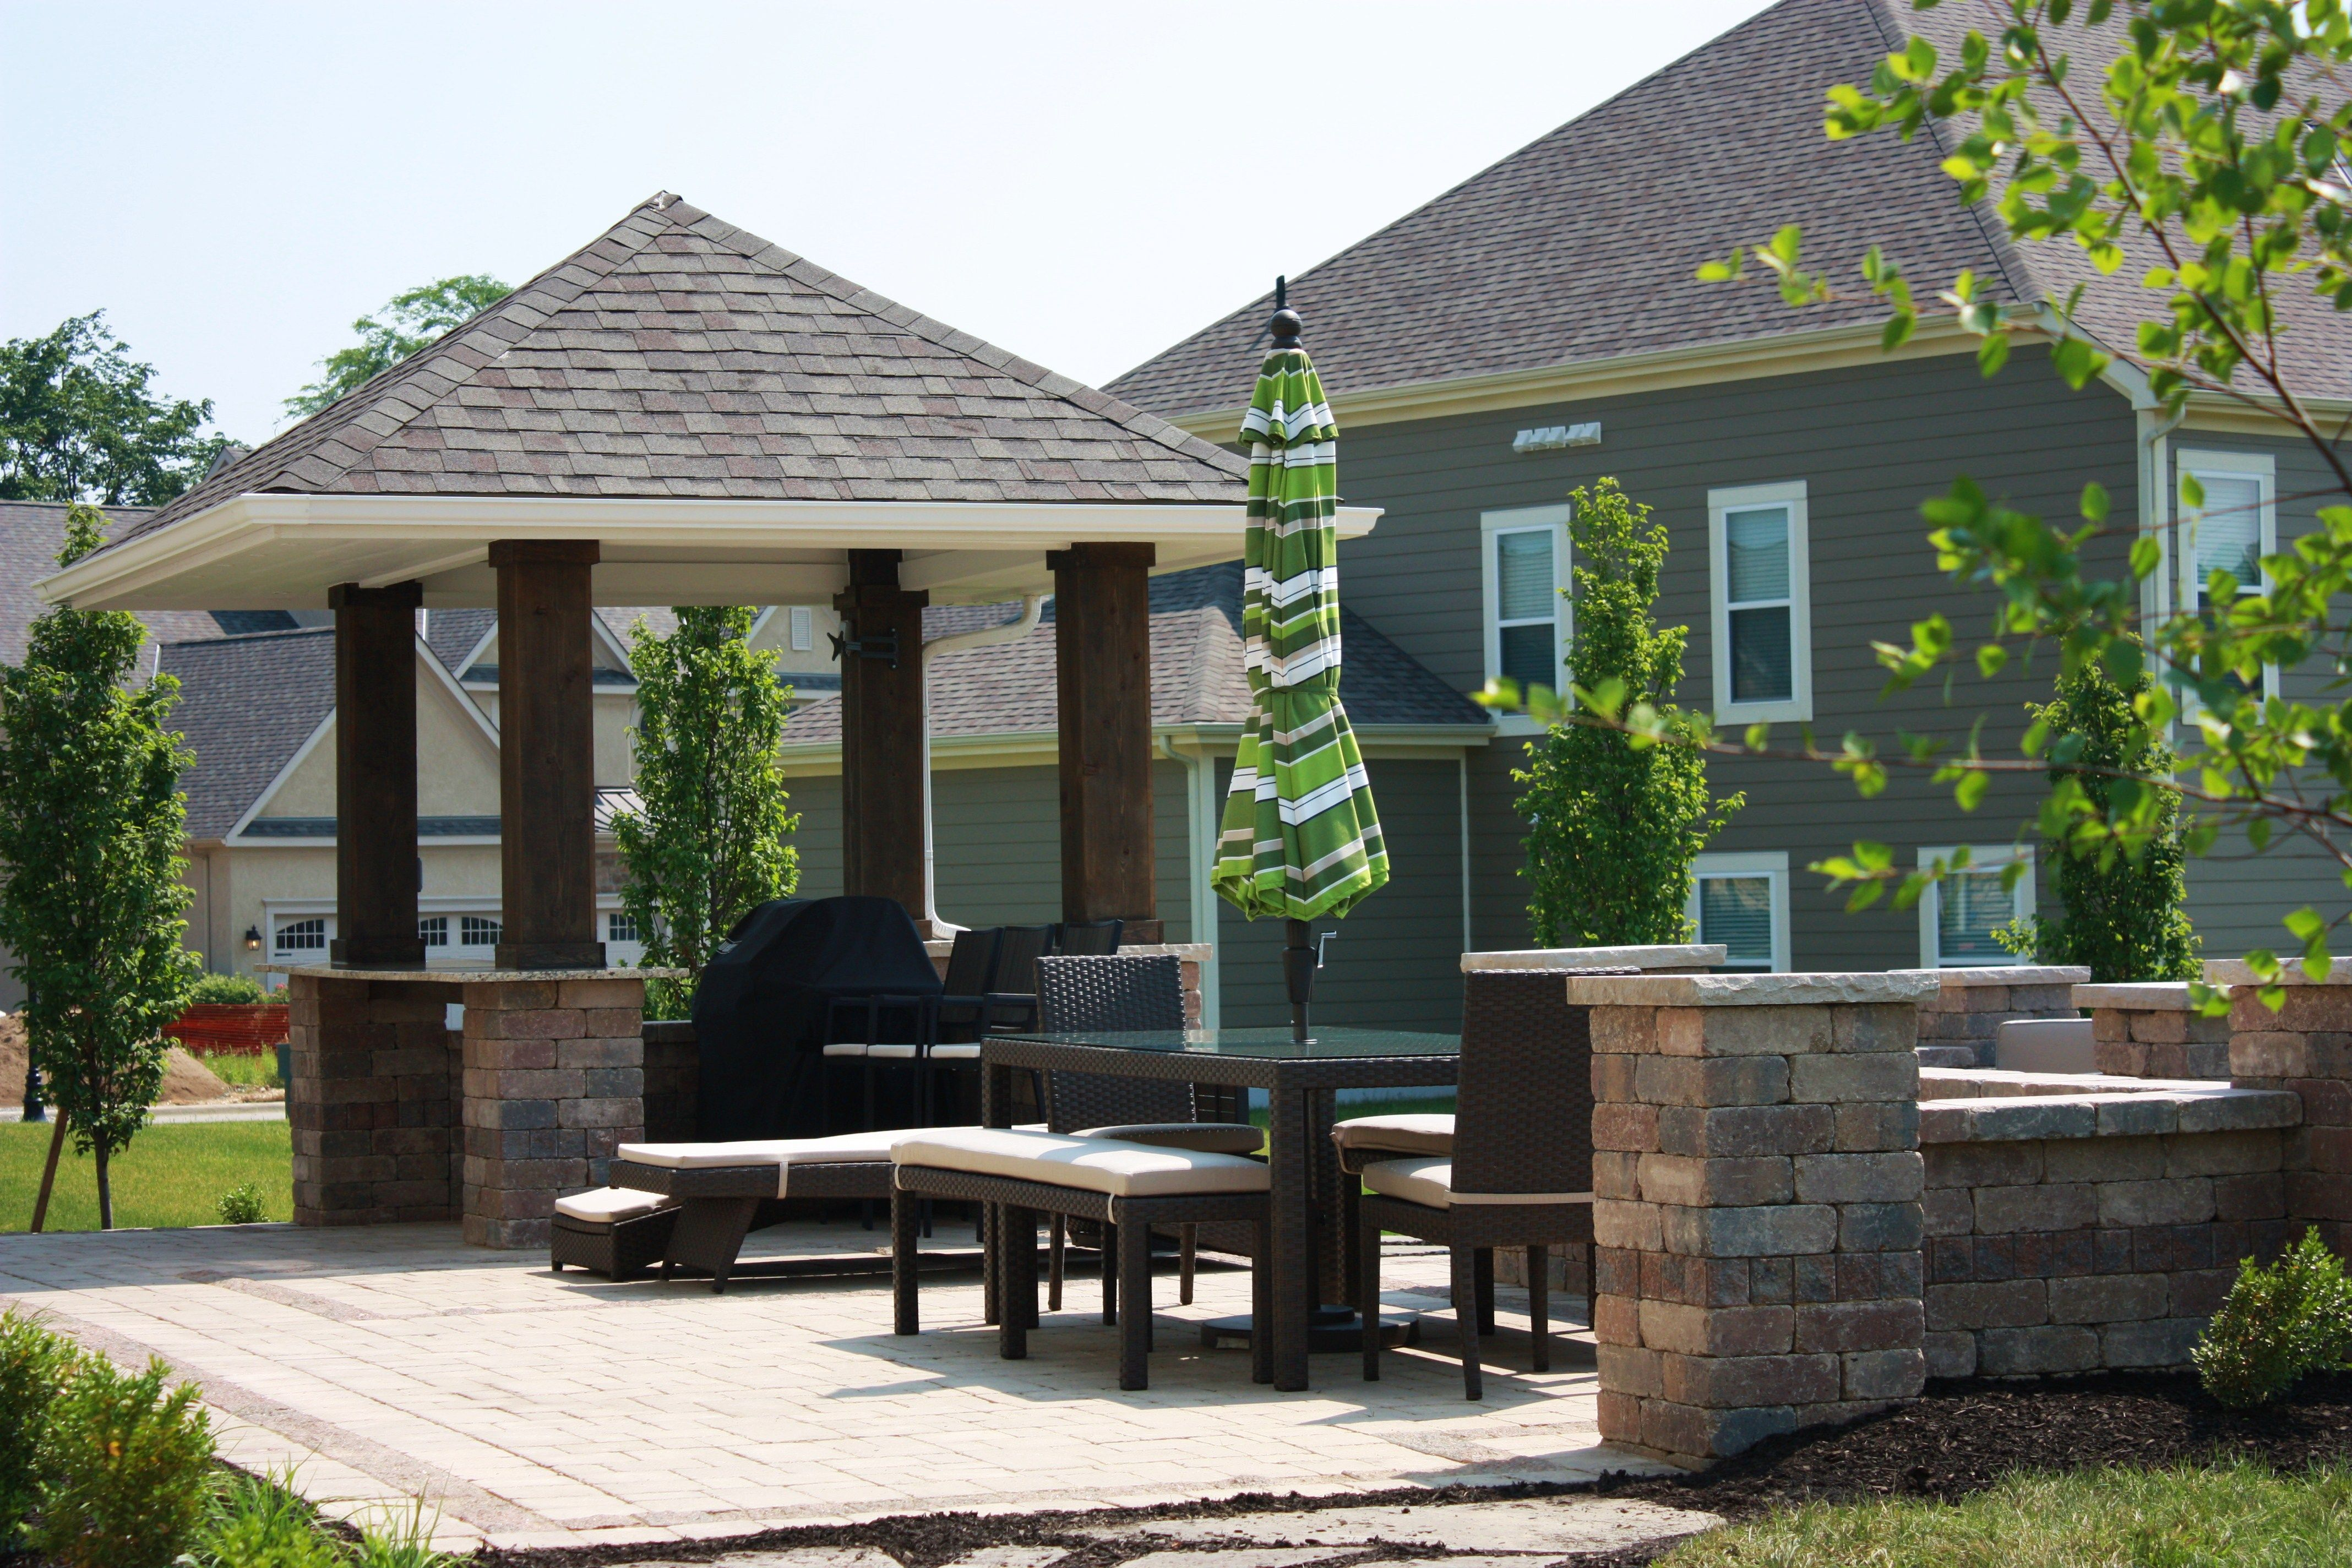 Weekend Suburban Party House!Outdoor Bar With Pavilion. Patio Pavers With  Limestone Accents.